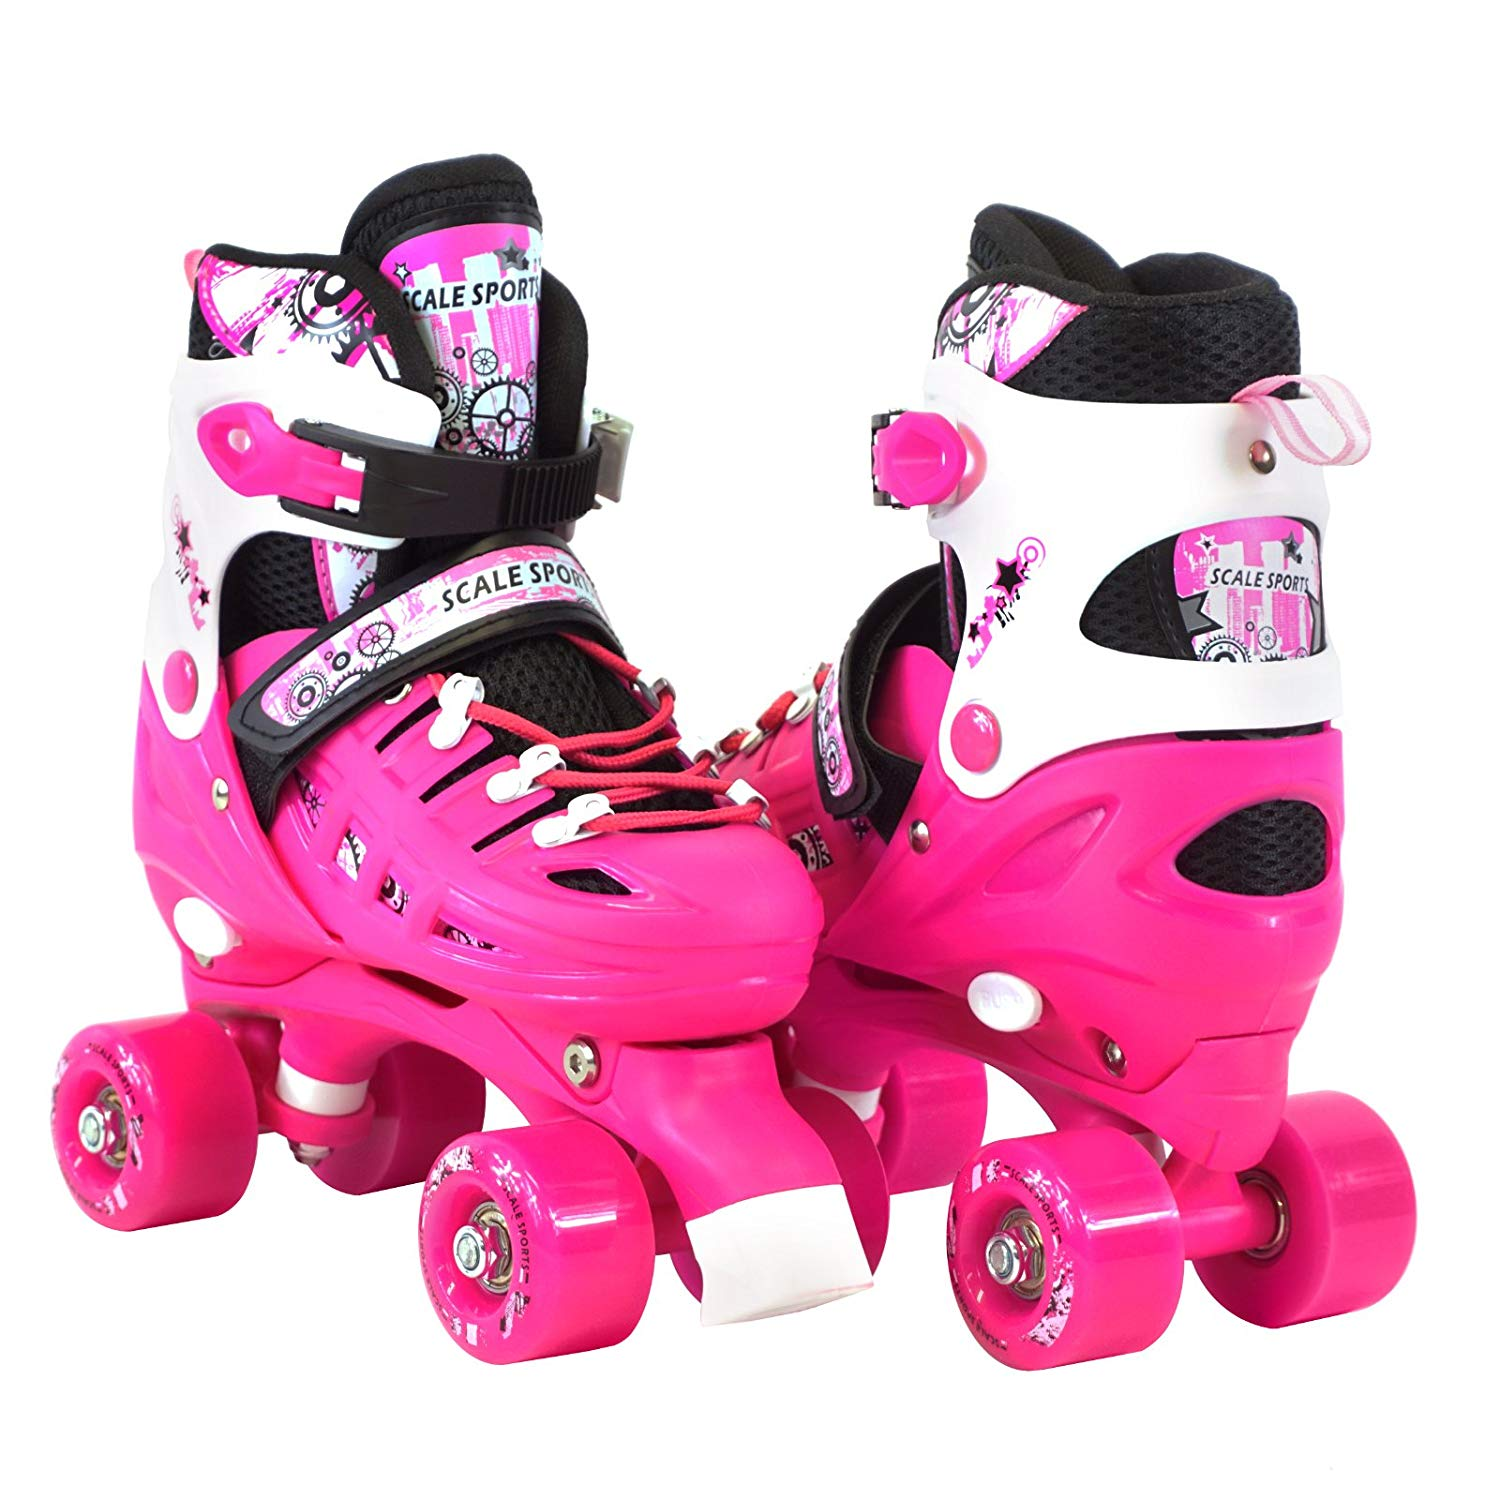 Scale Sports Adjustable Quad Roller Skates